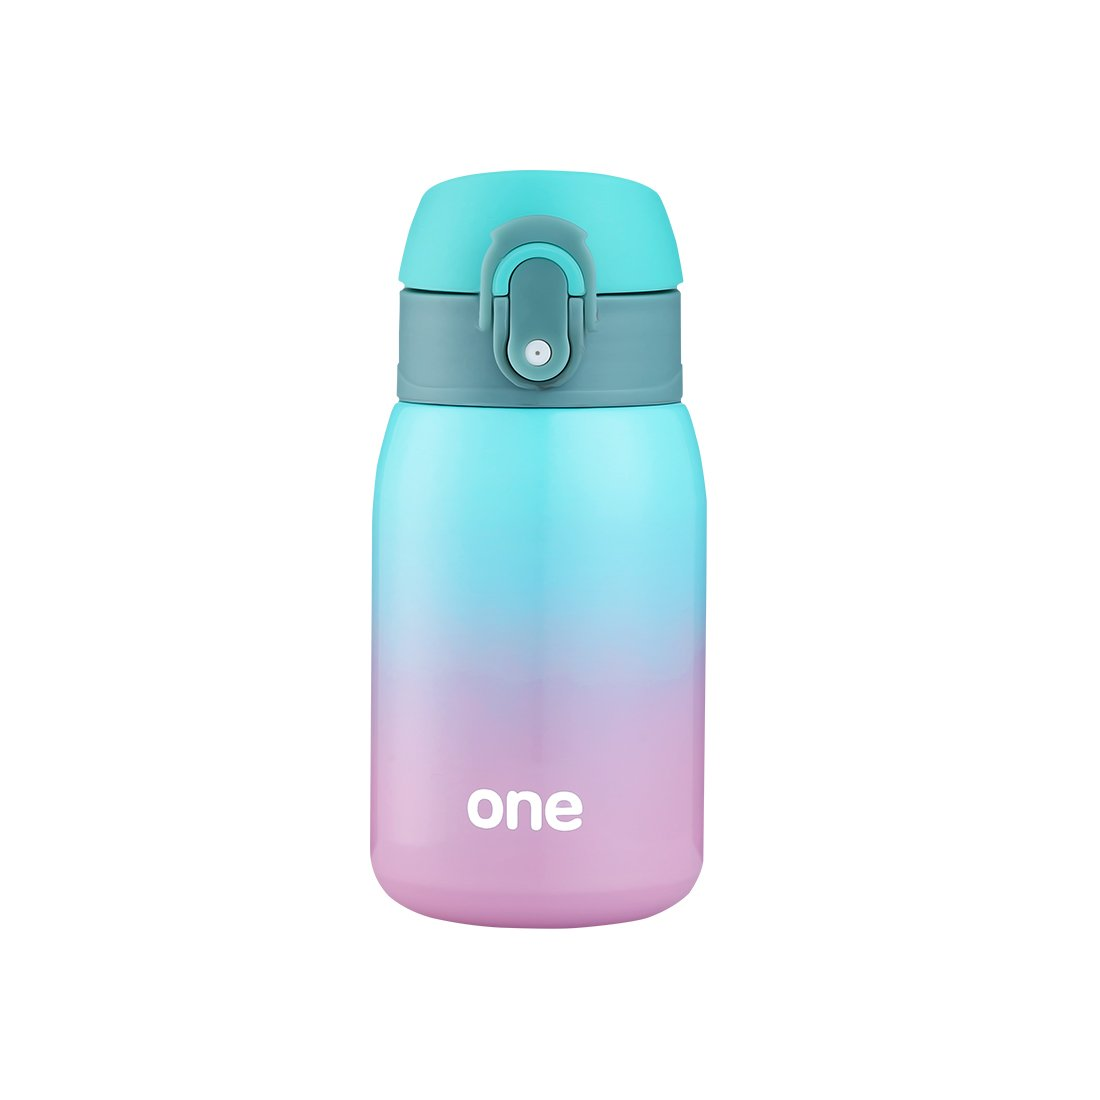 Mini Water Bottle for Kids& Adult, Vacuum Insulated Bottle, Travel Coffee Cup, Stainless Steel Thumbler, Ombre - 9oz (Green-Pink) Huizhou Wuyuesihai Co. Ltd. ZHM#60